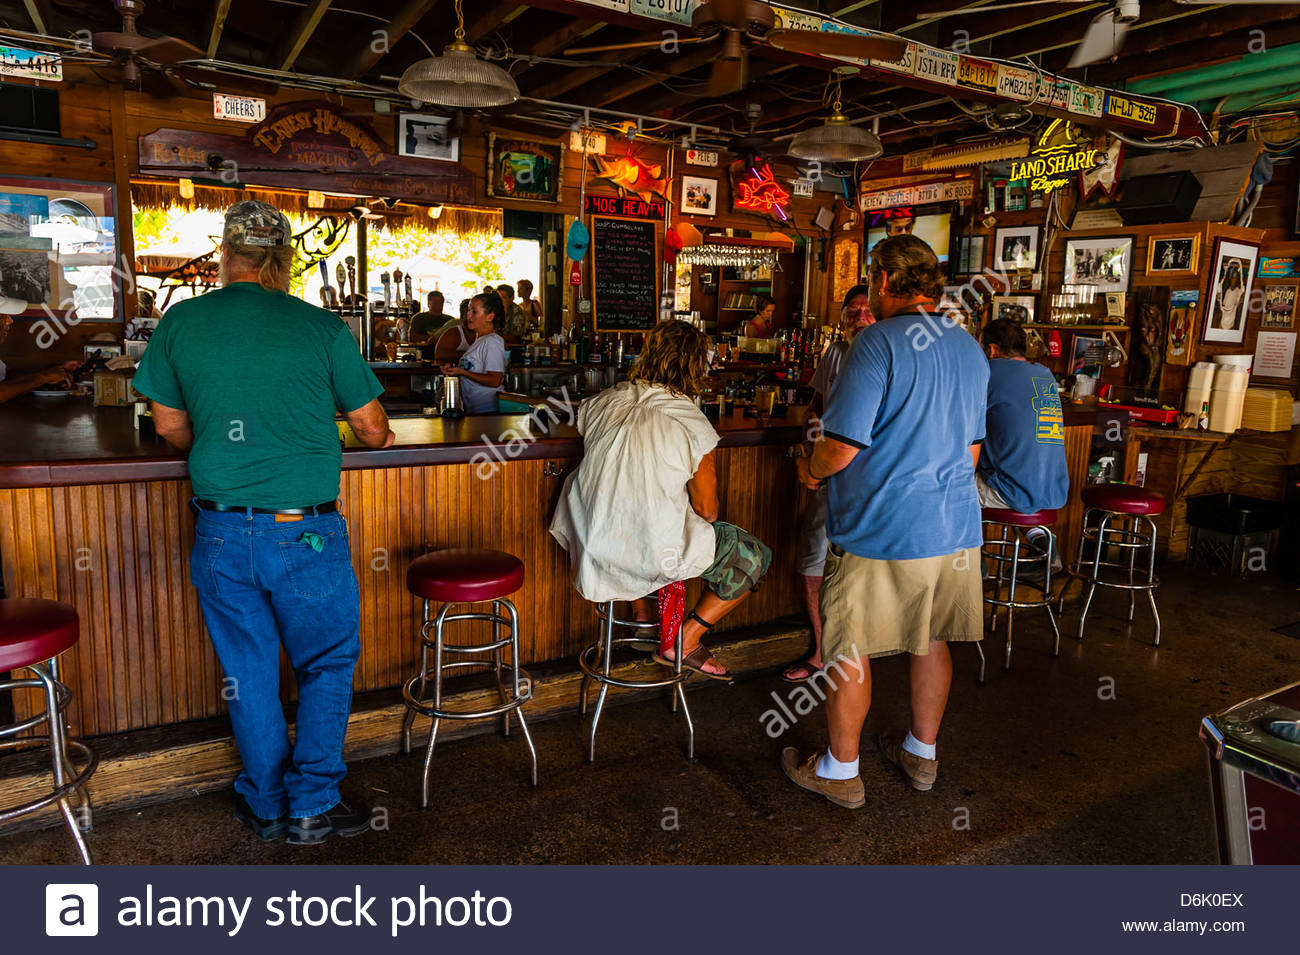 Hogfish Bar And Grill Key West Restaurant